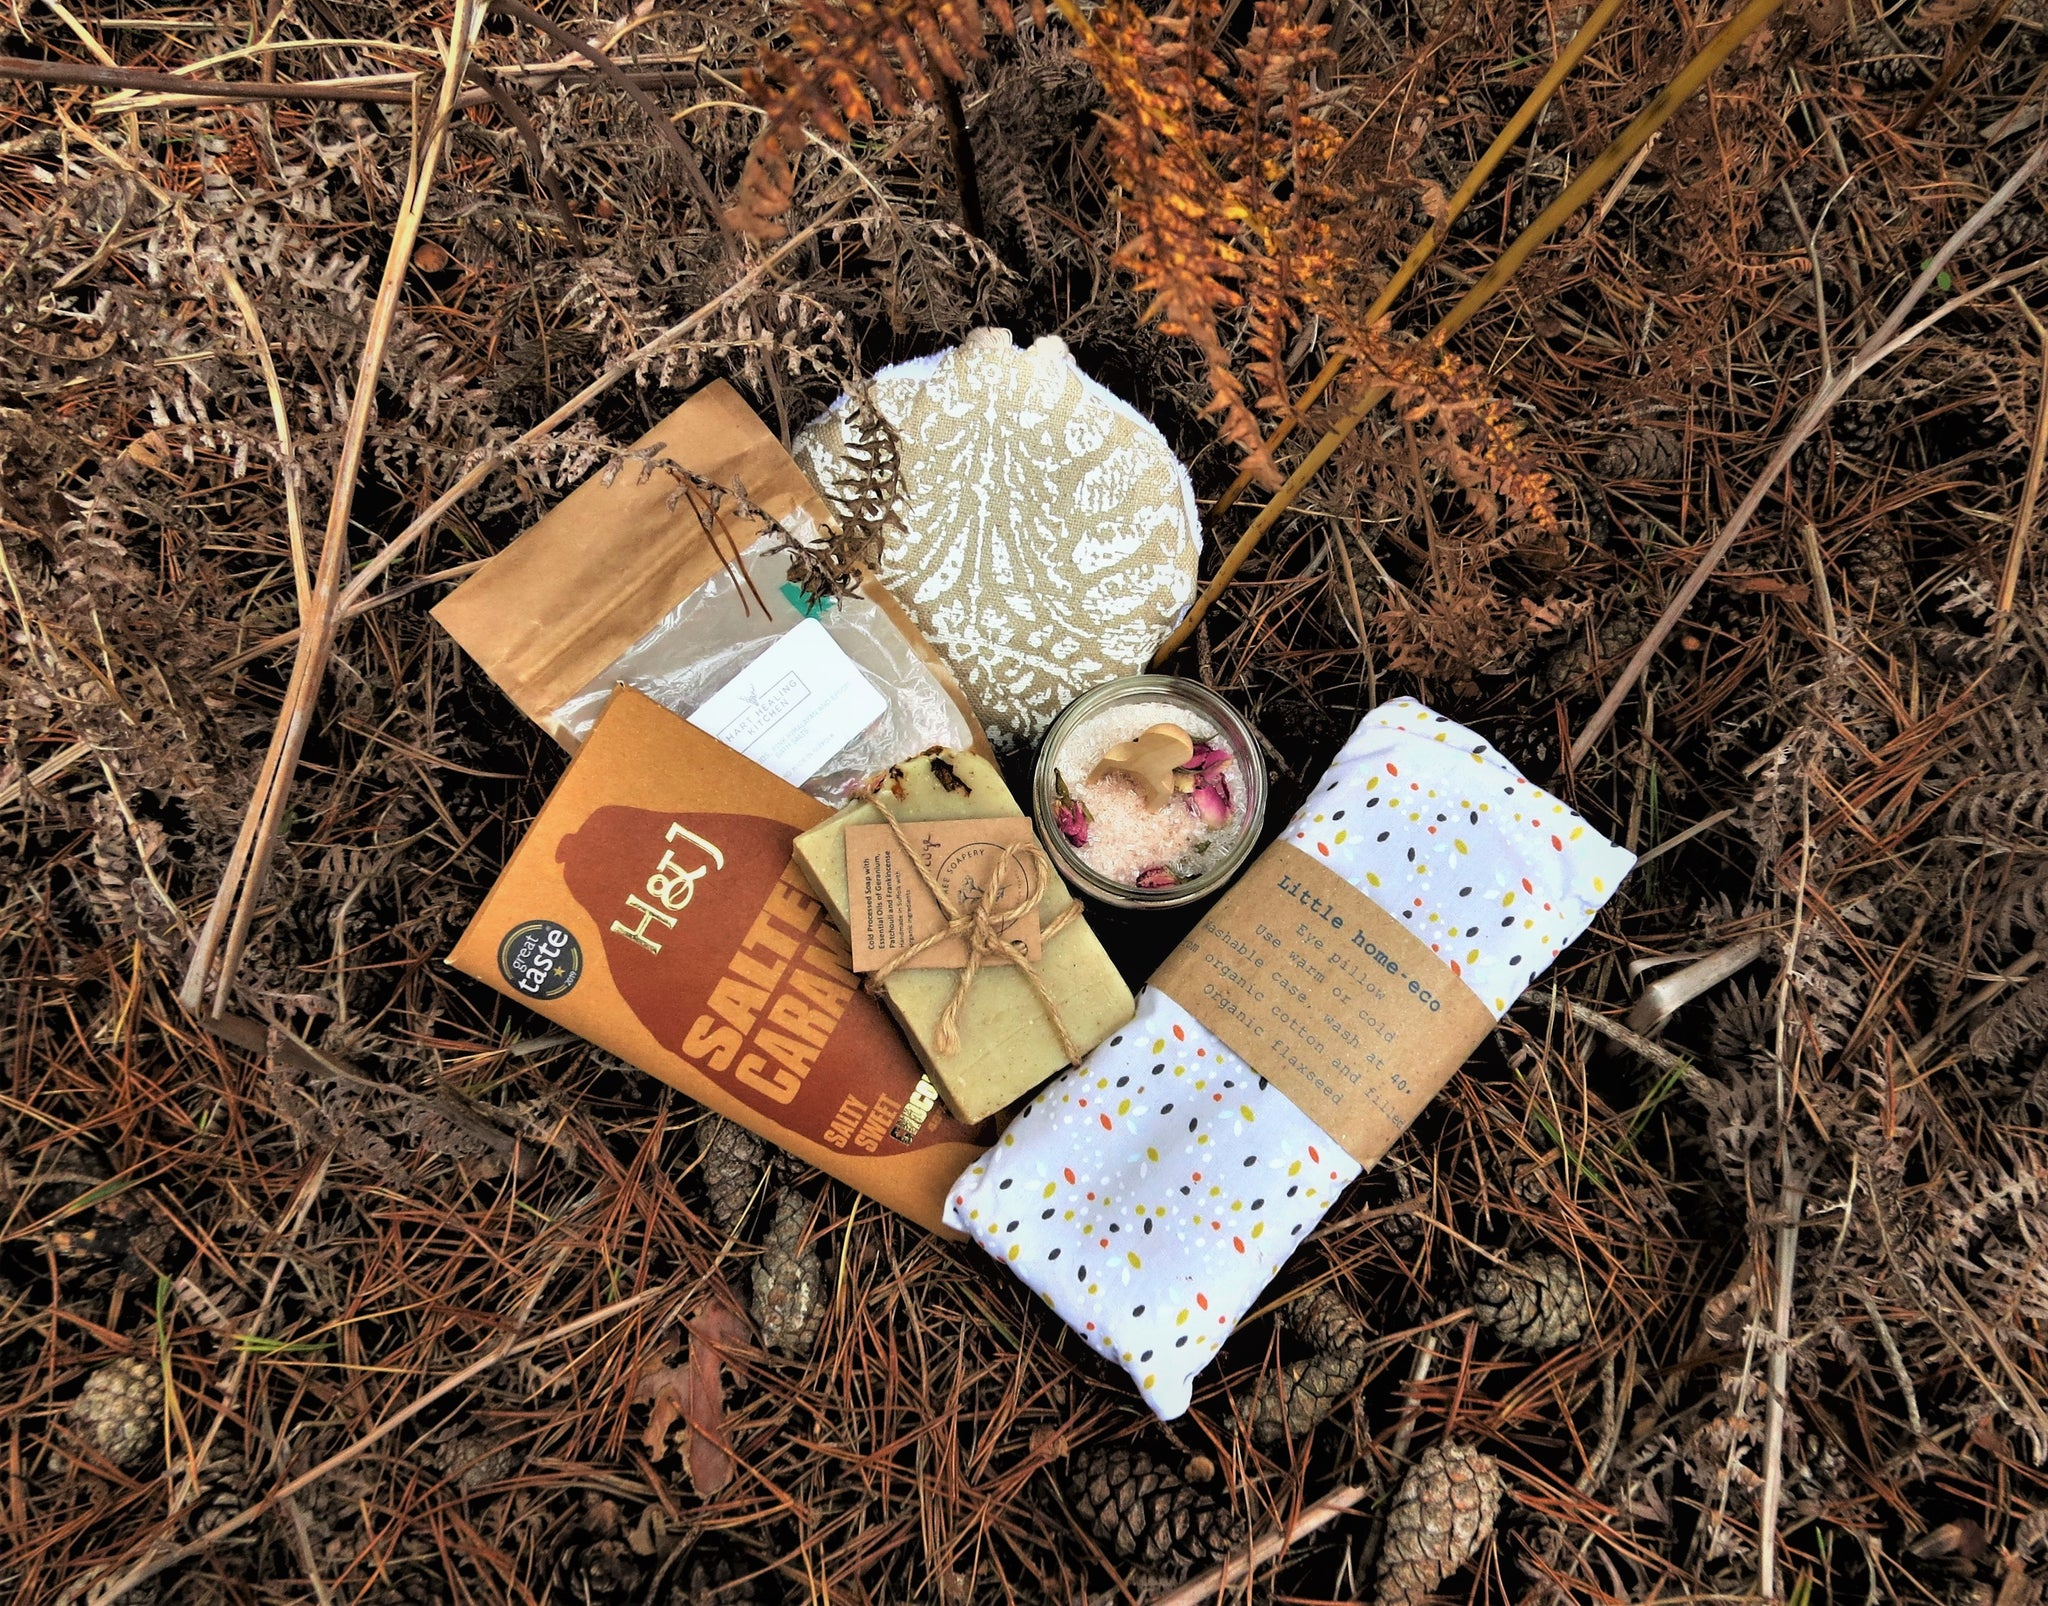 The Bath Box contents, luxury body sponge, bath salts, organic eye pillow, Harris & James chocolate and rose petal soap